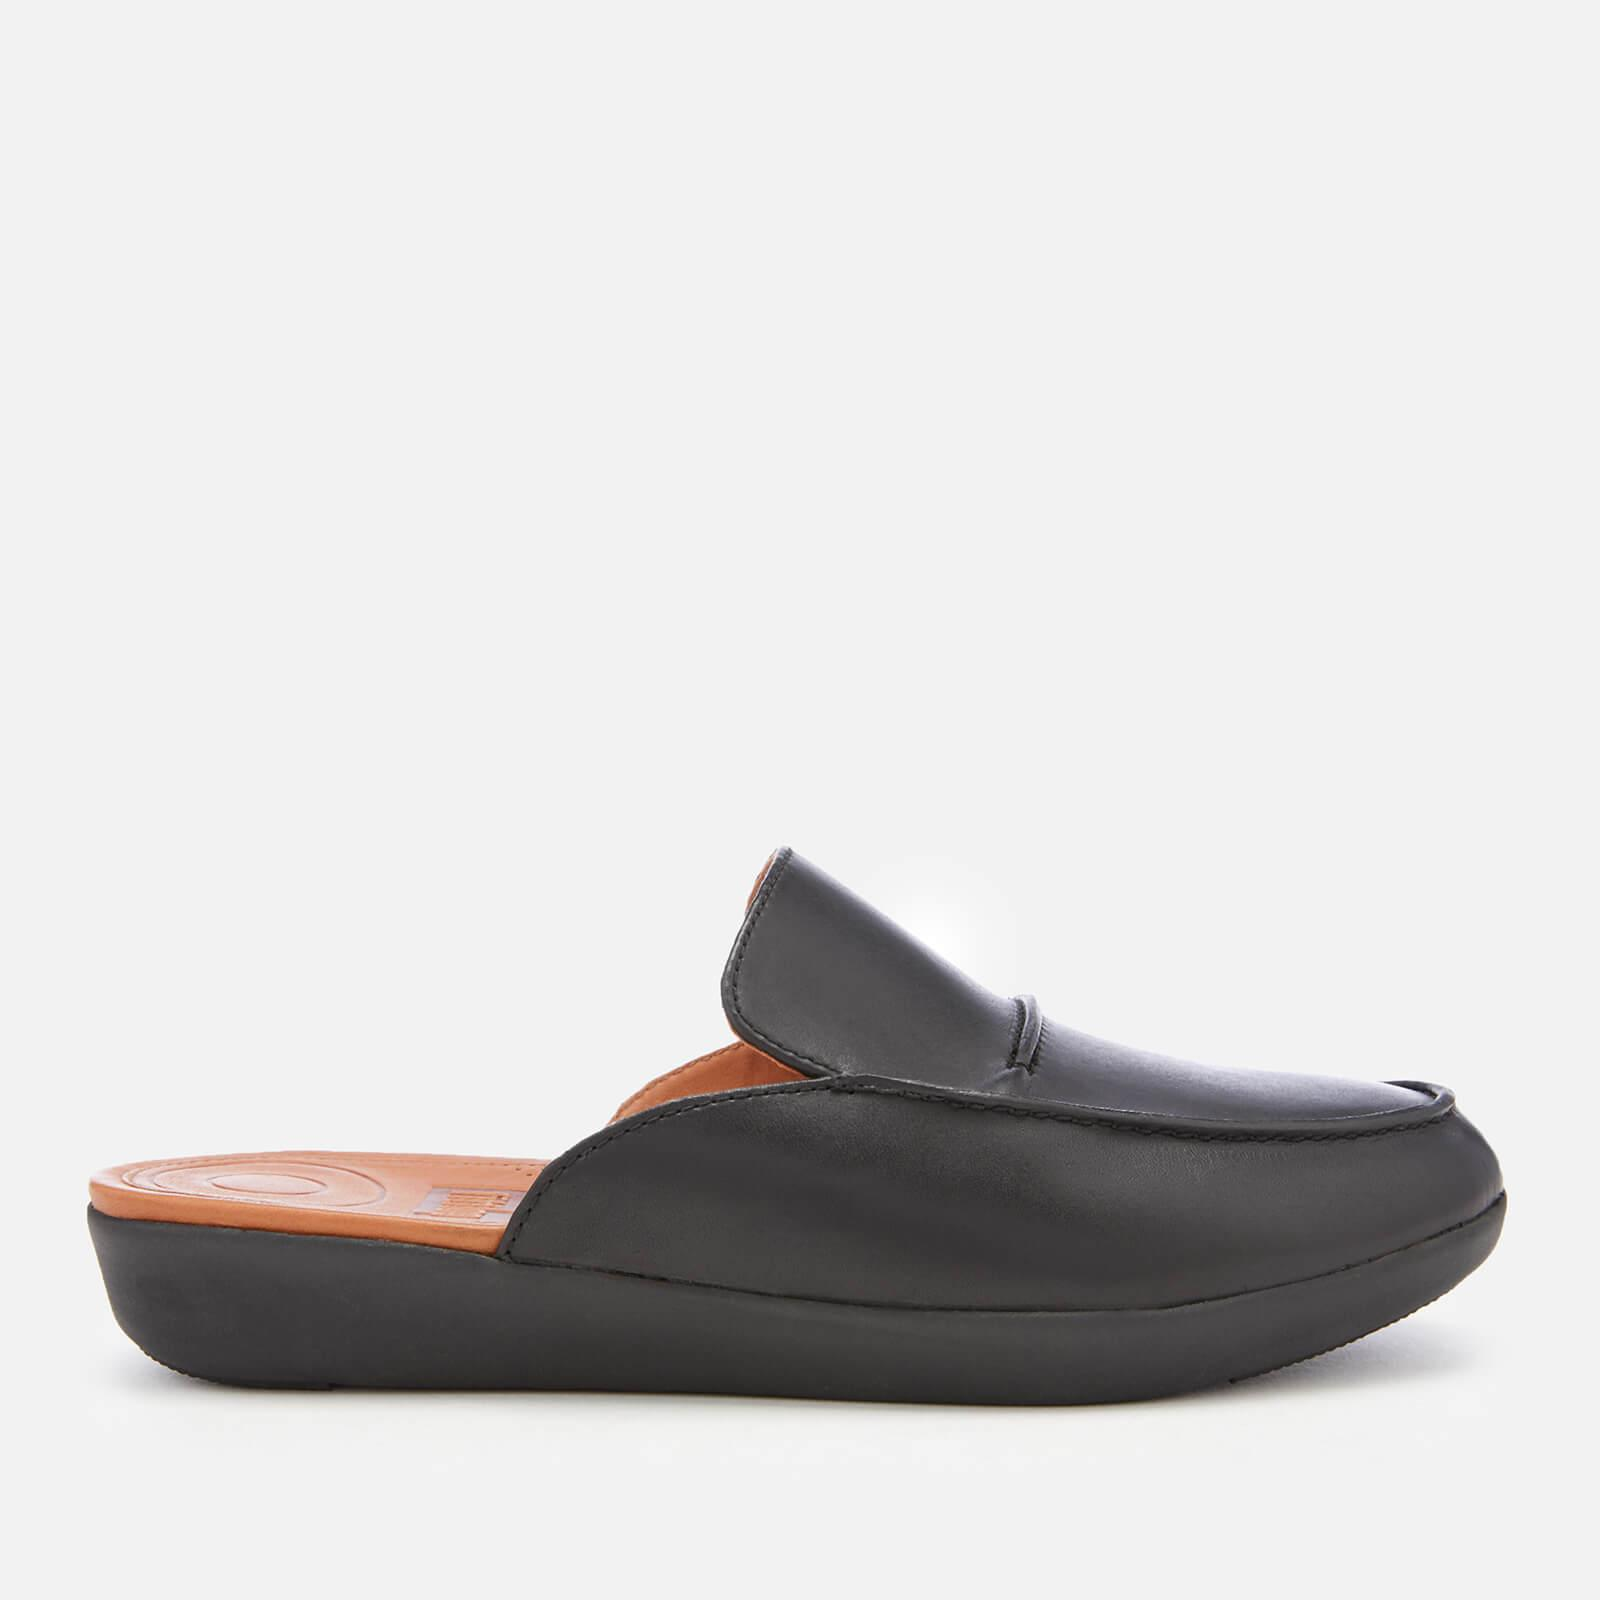 fc6c97a1fe5b7 Fitflop Serene Leather Mules in Black - Save 52% - Lyst